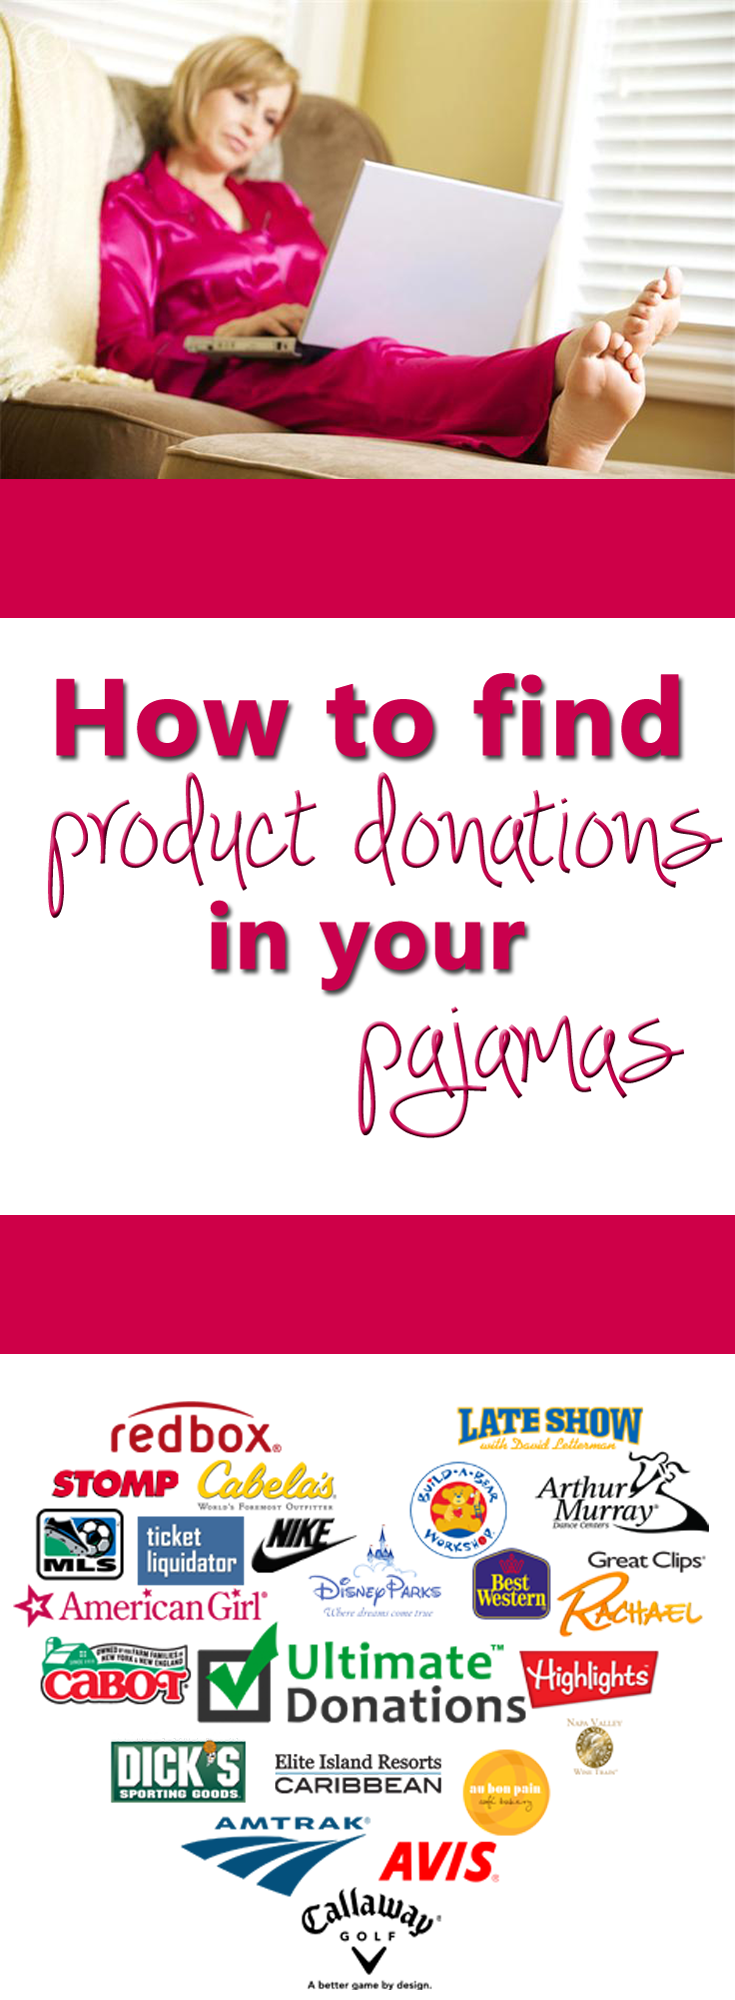 UltimateDonationsorg How To Find Product Donations In Your Pajamas Copy